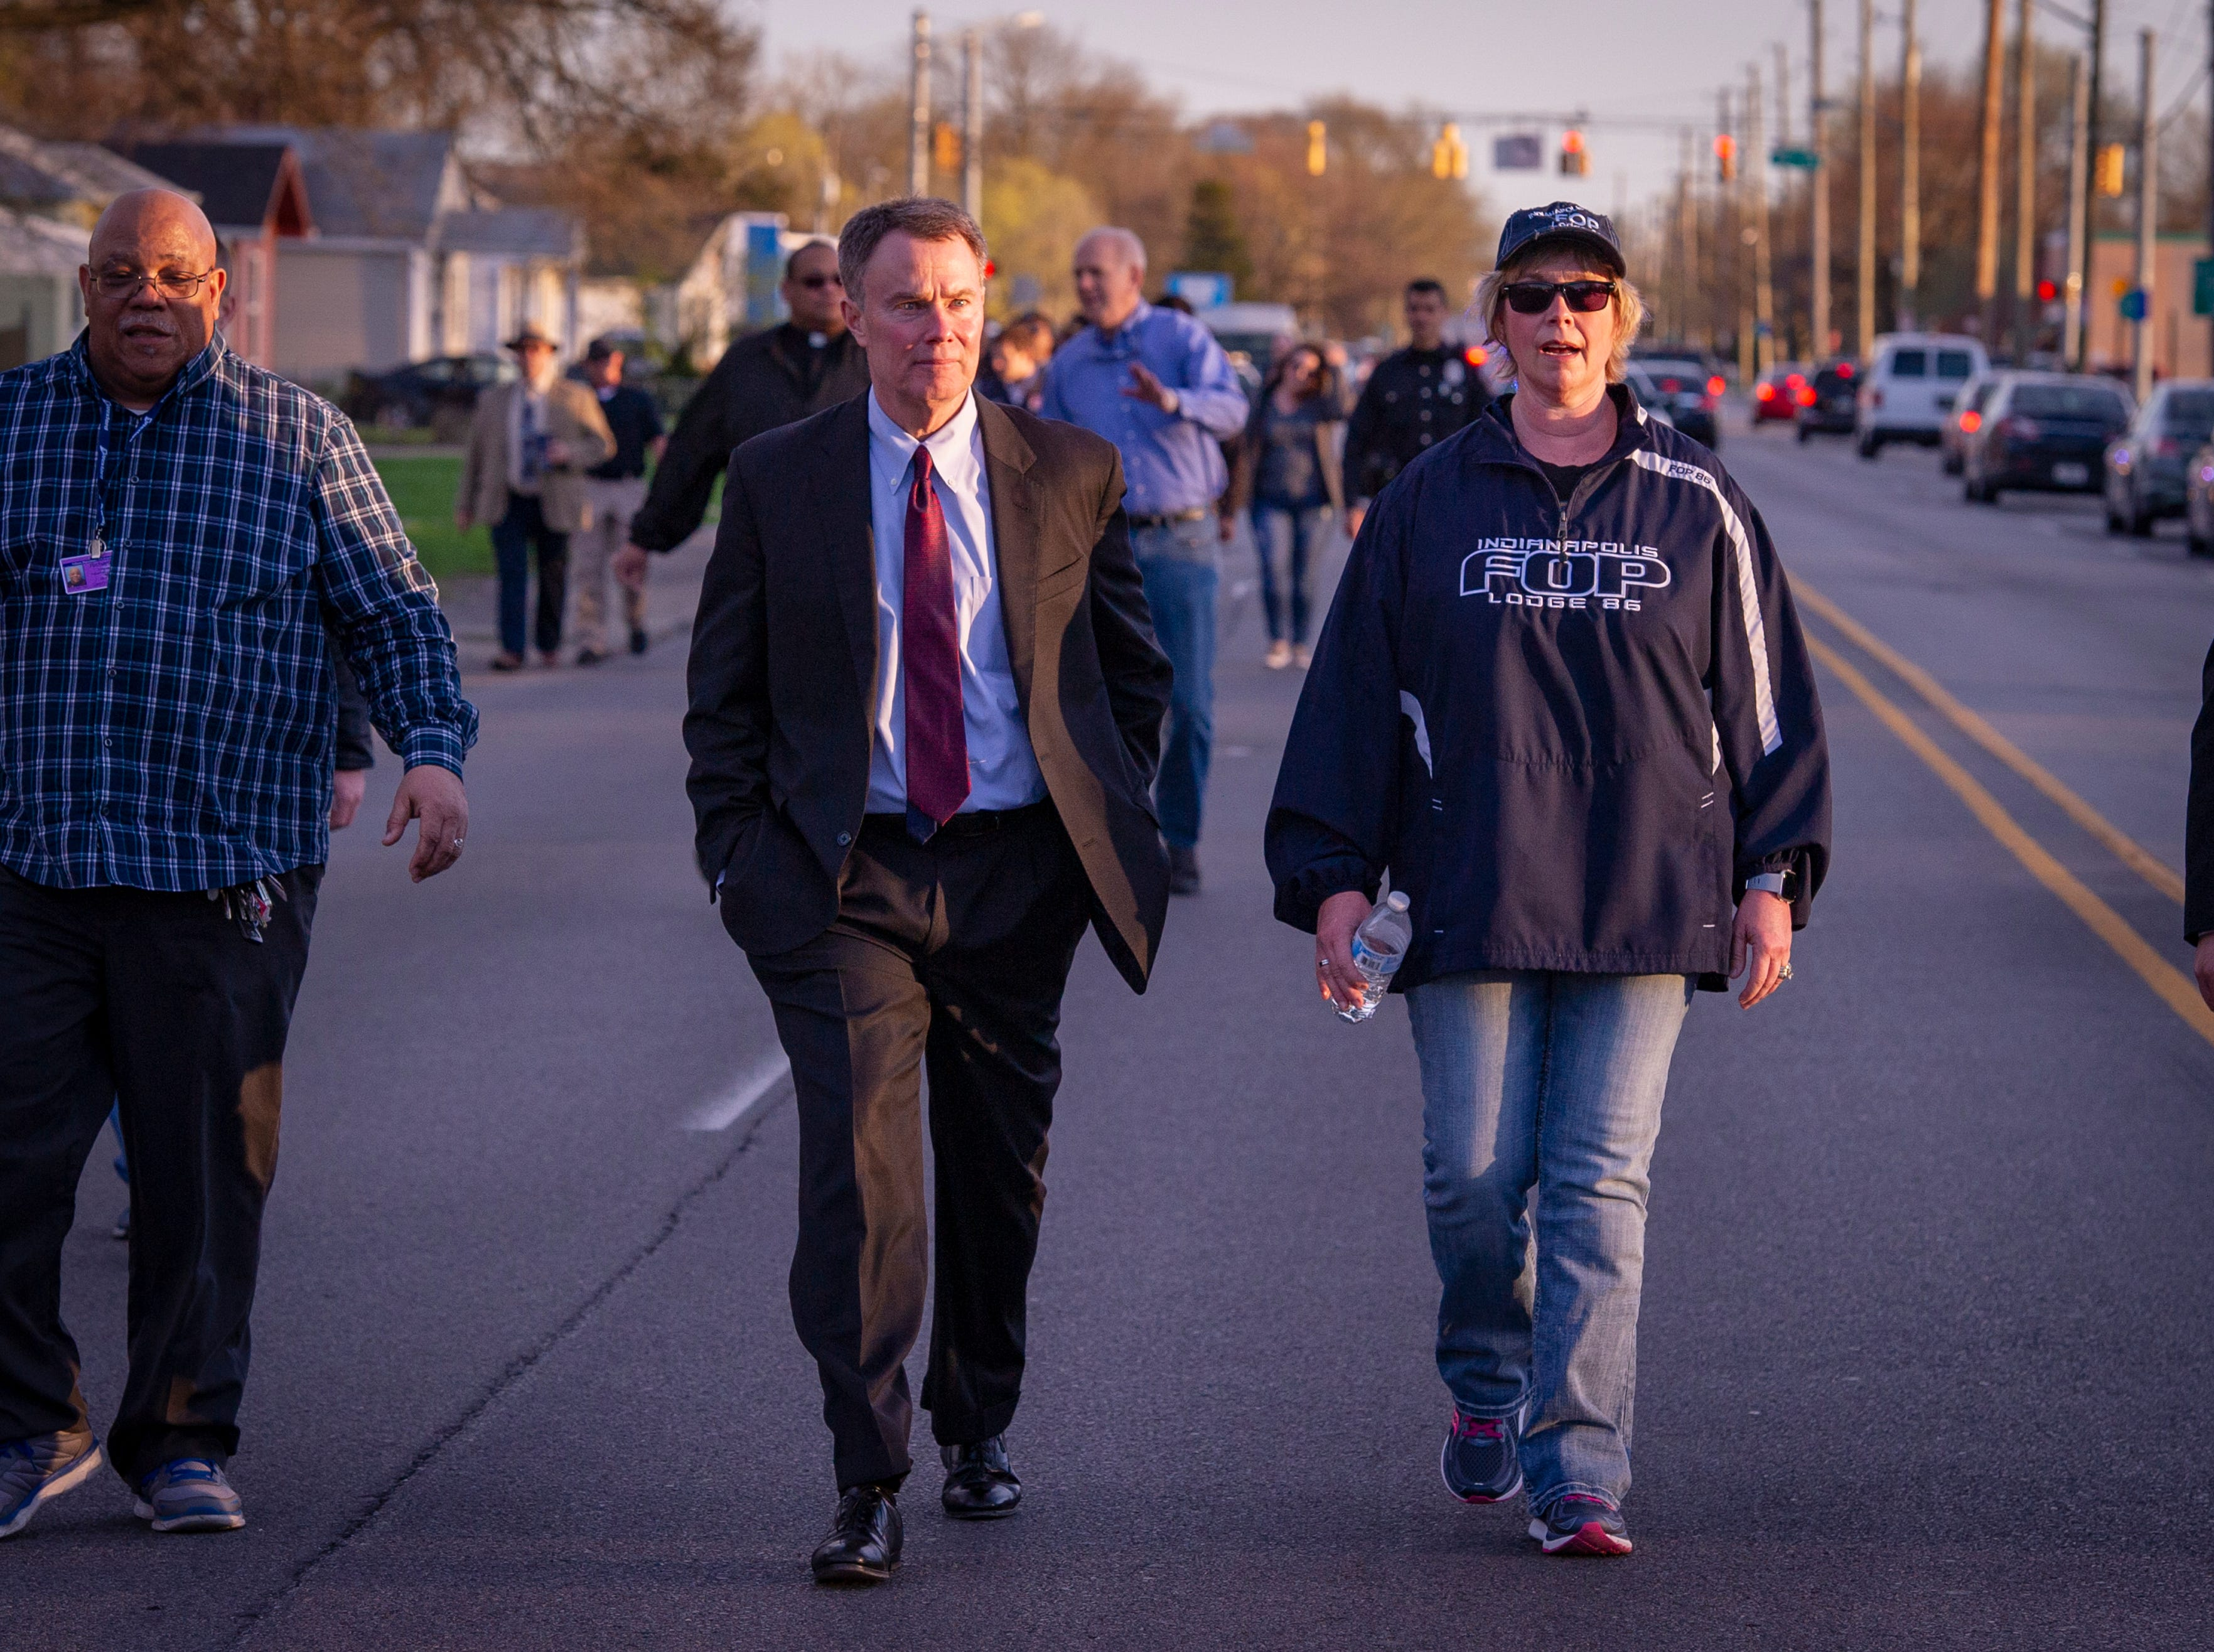 Indianapolis Mayor Joseph Hogsett said he was participating in the event as a citizen not as the mayor. The Indianapolis Fraternal Order of Police, along with members of the Indy Ten Point Coalition, law enforcement officers from Southport, Lawrence, Cumberland police departments and a group of citizens participated in a peace walk, Friday, April 12, 2019. The groups organized in an effort to raise awareness for the increase of violence in the area of Washington Park on the northeast side of Indianapolis.